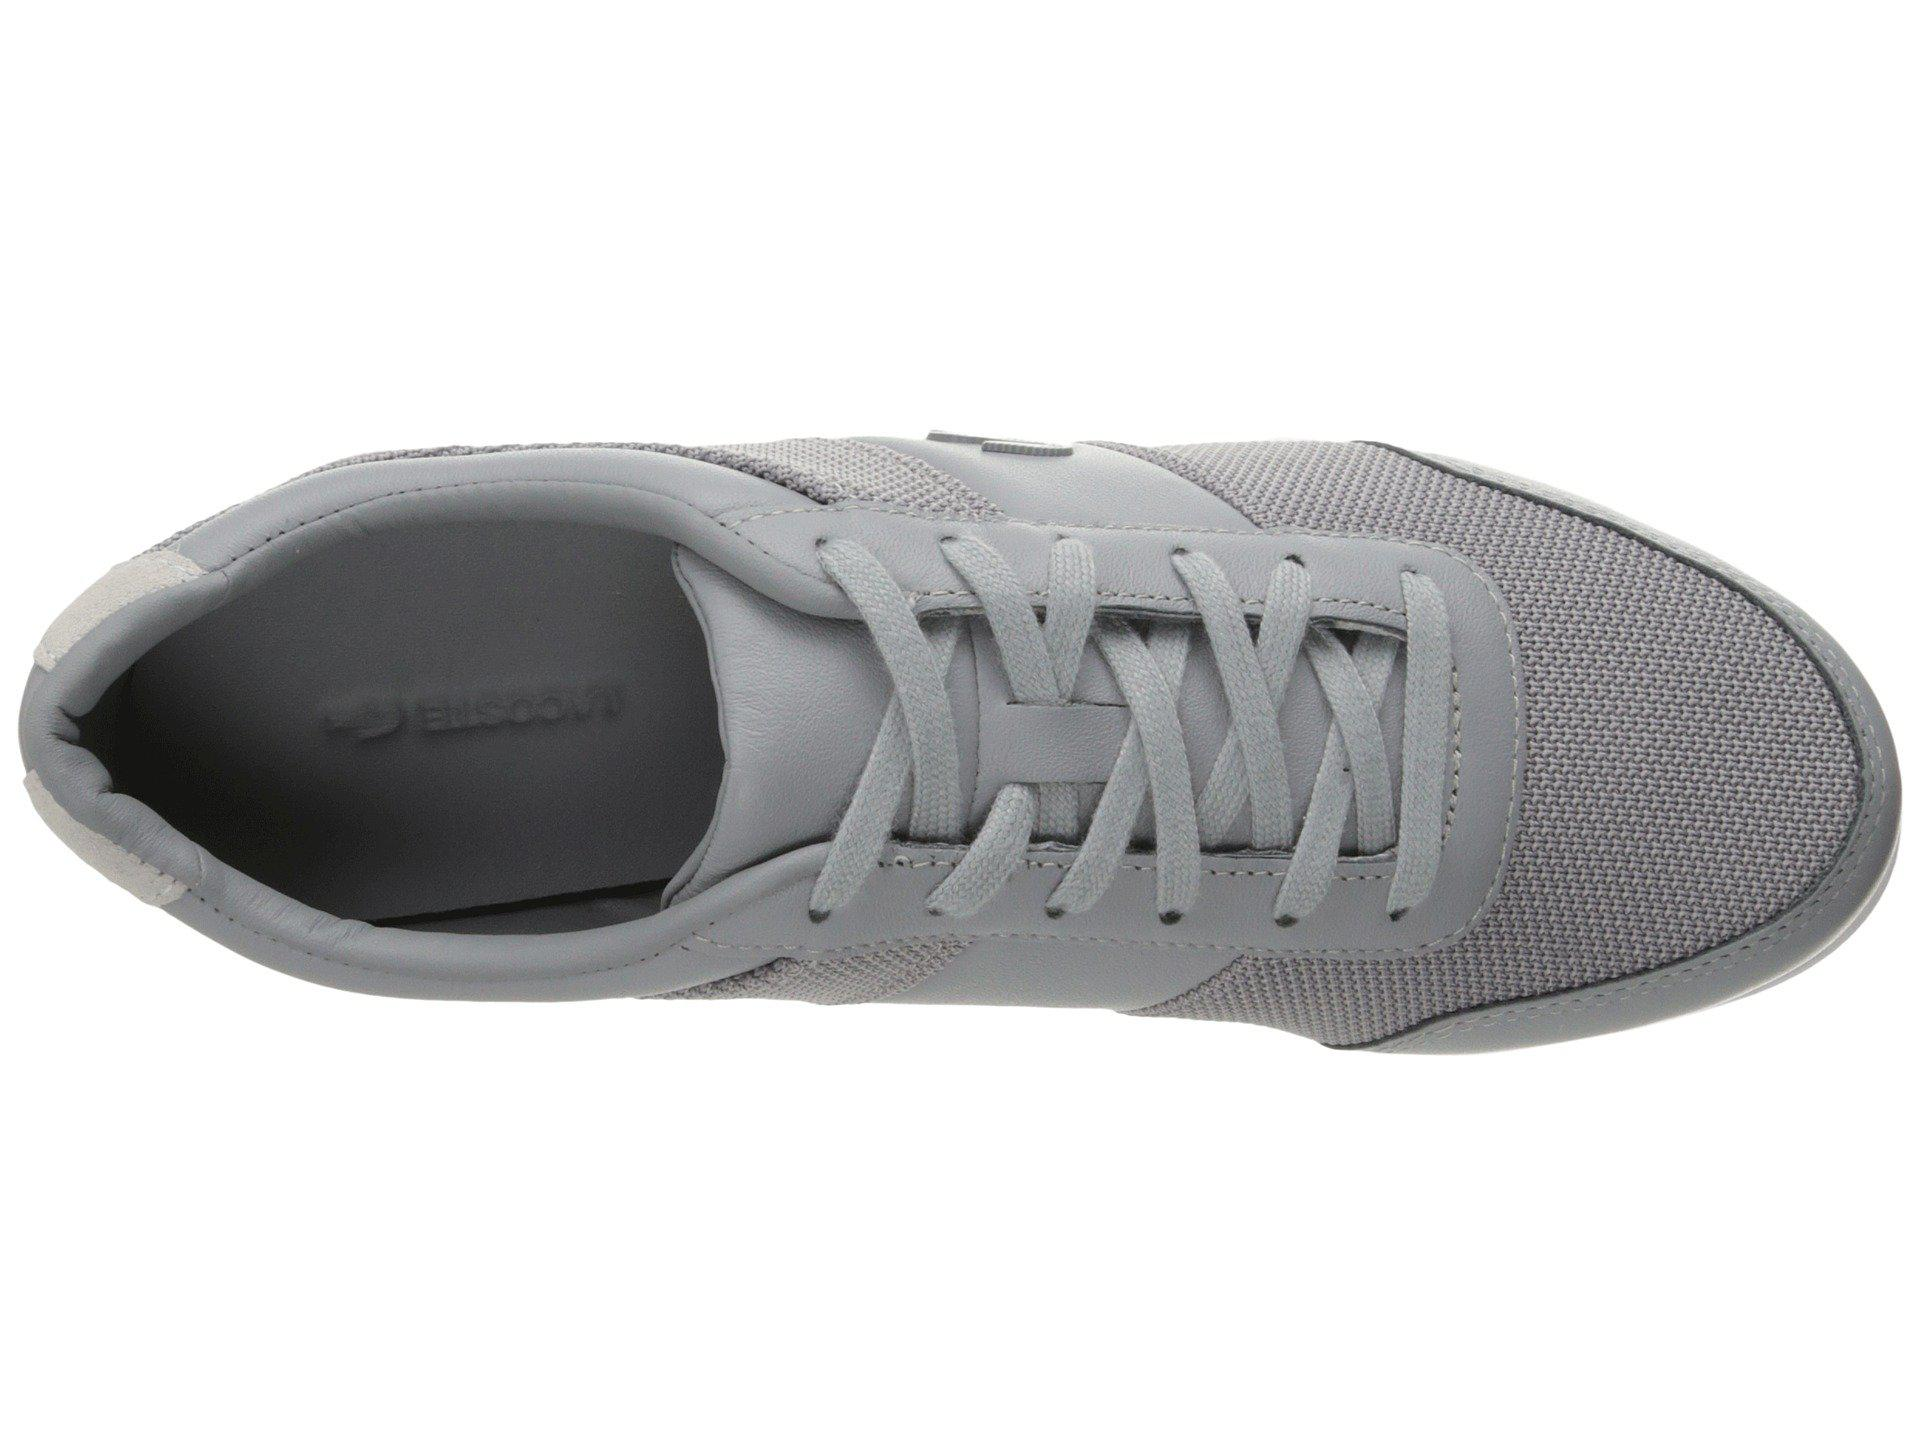 ca04cf4bc09401 Lyst - Lacoste Embrun 217 1 in Gray for Men